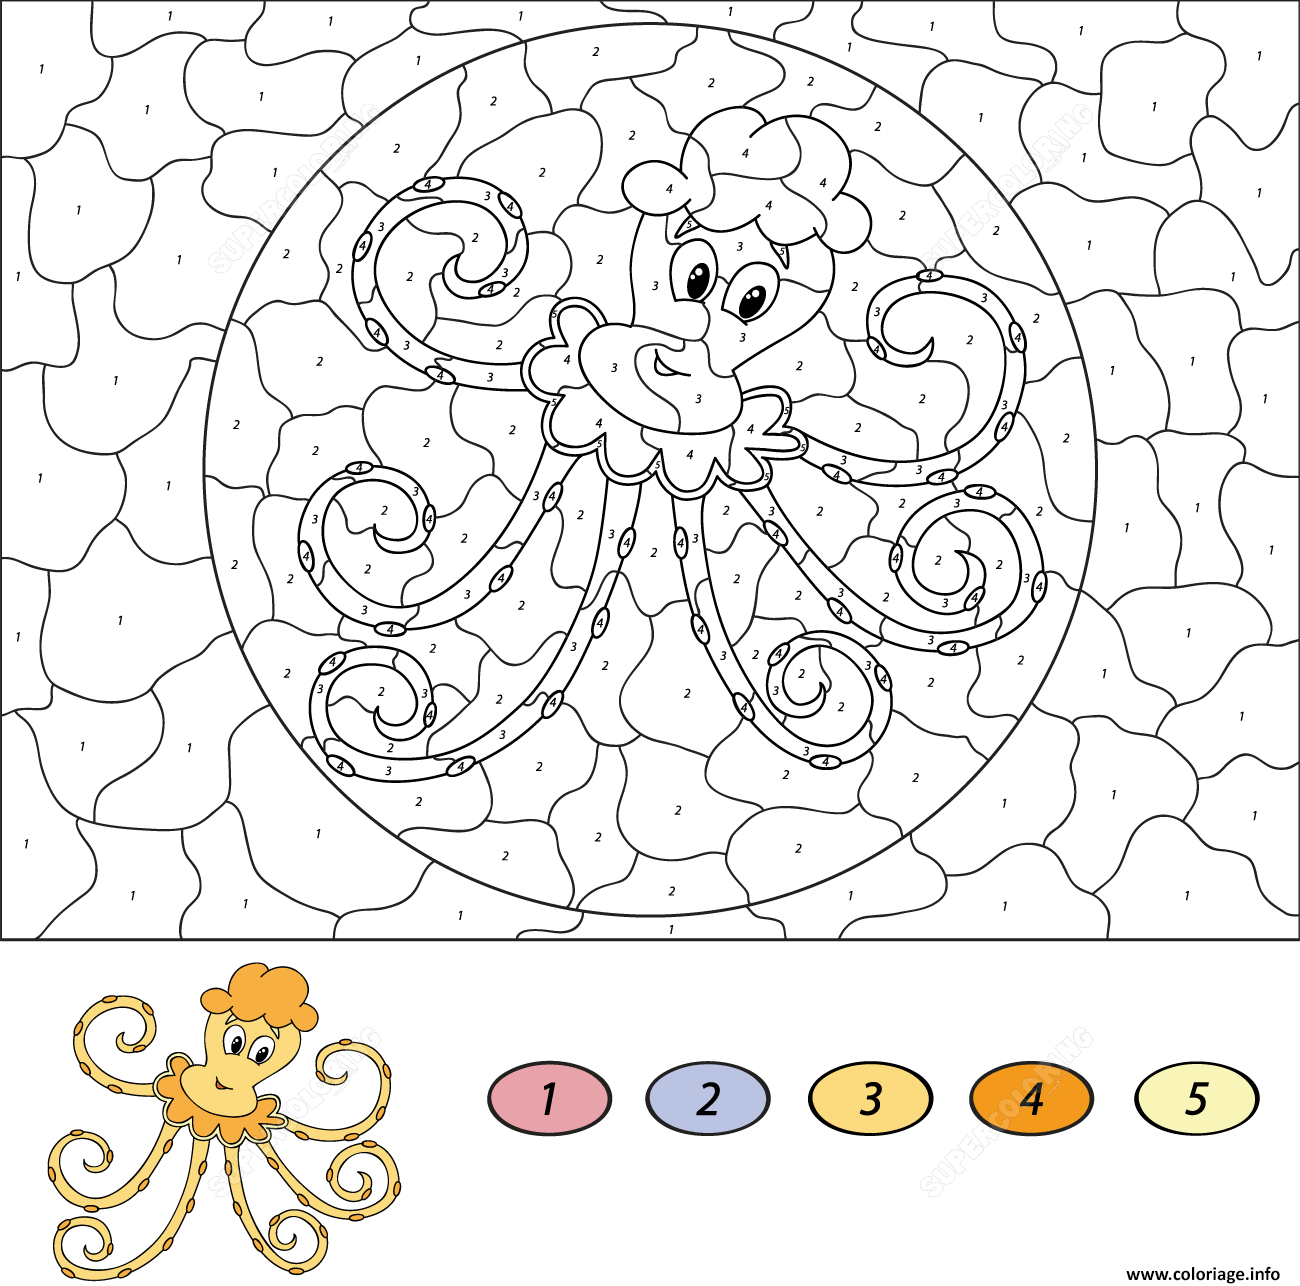 Coloriage Cartoon Octopus Magique Dessin à Imprimer